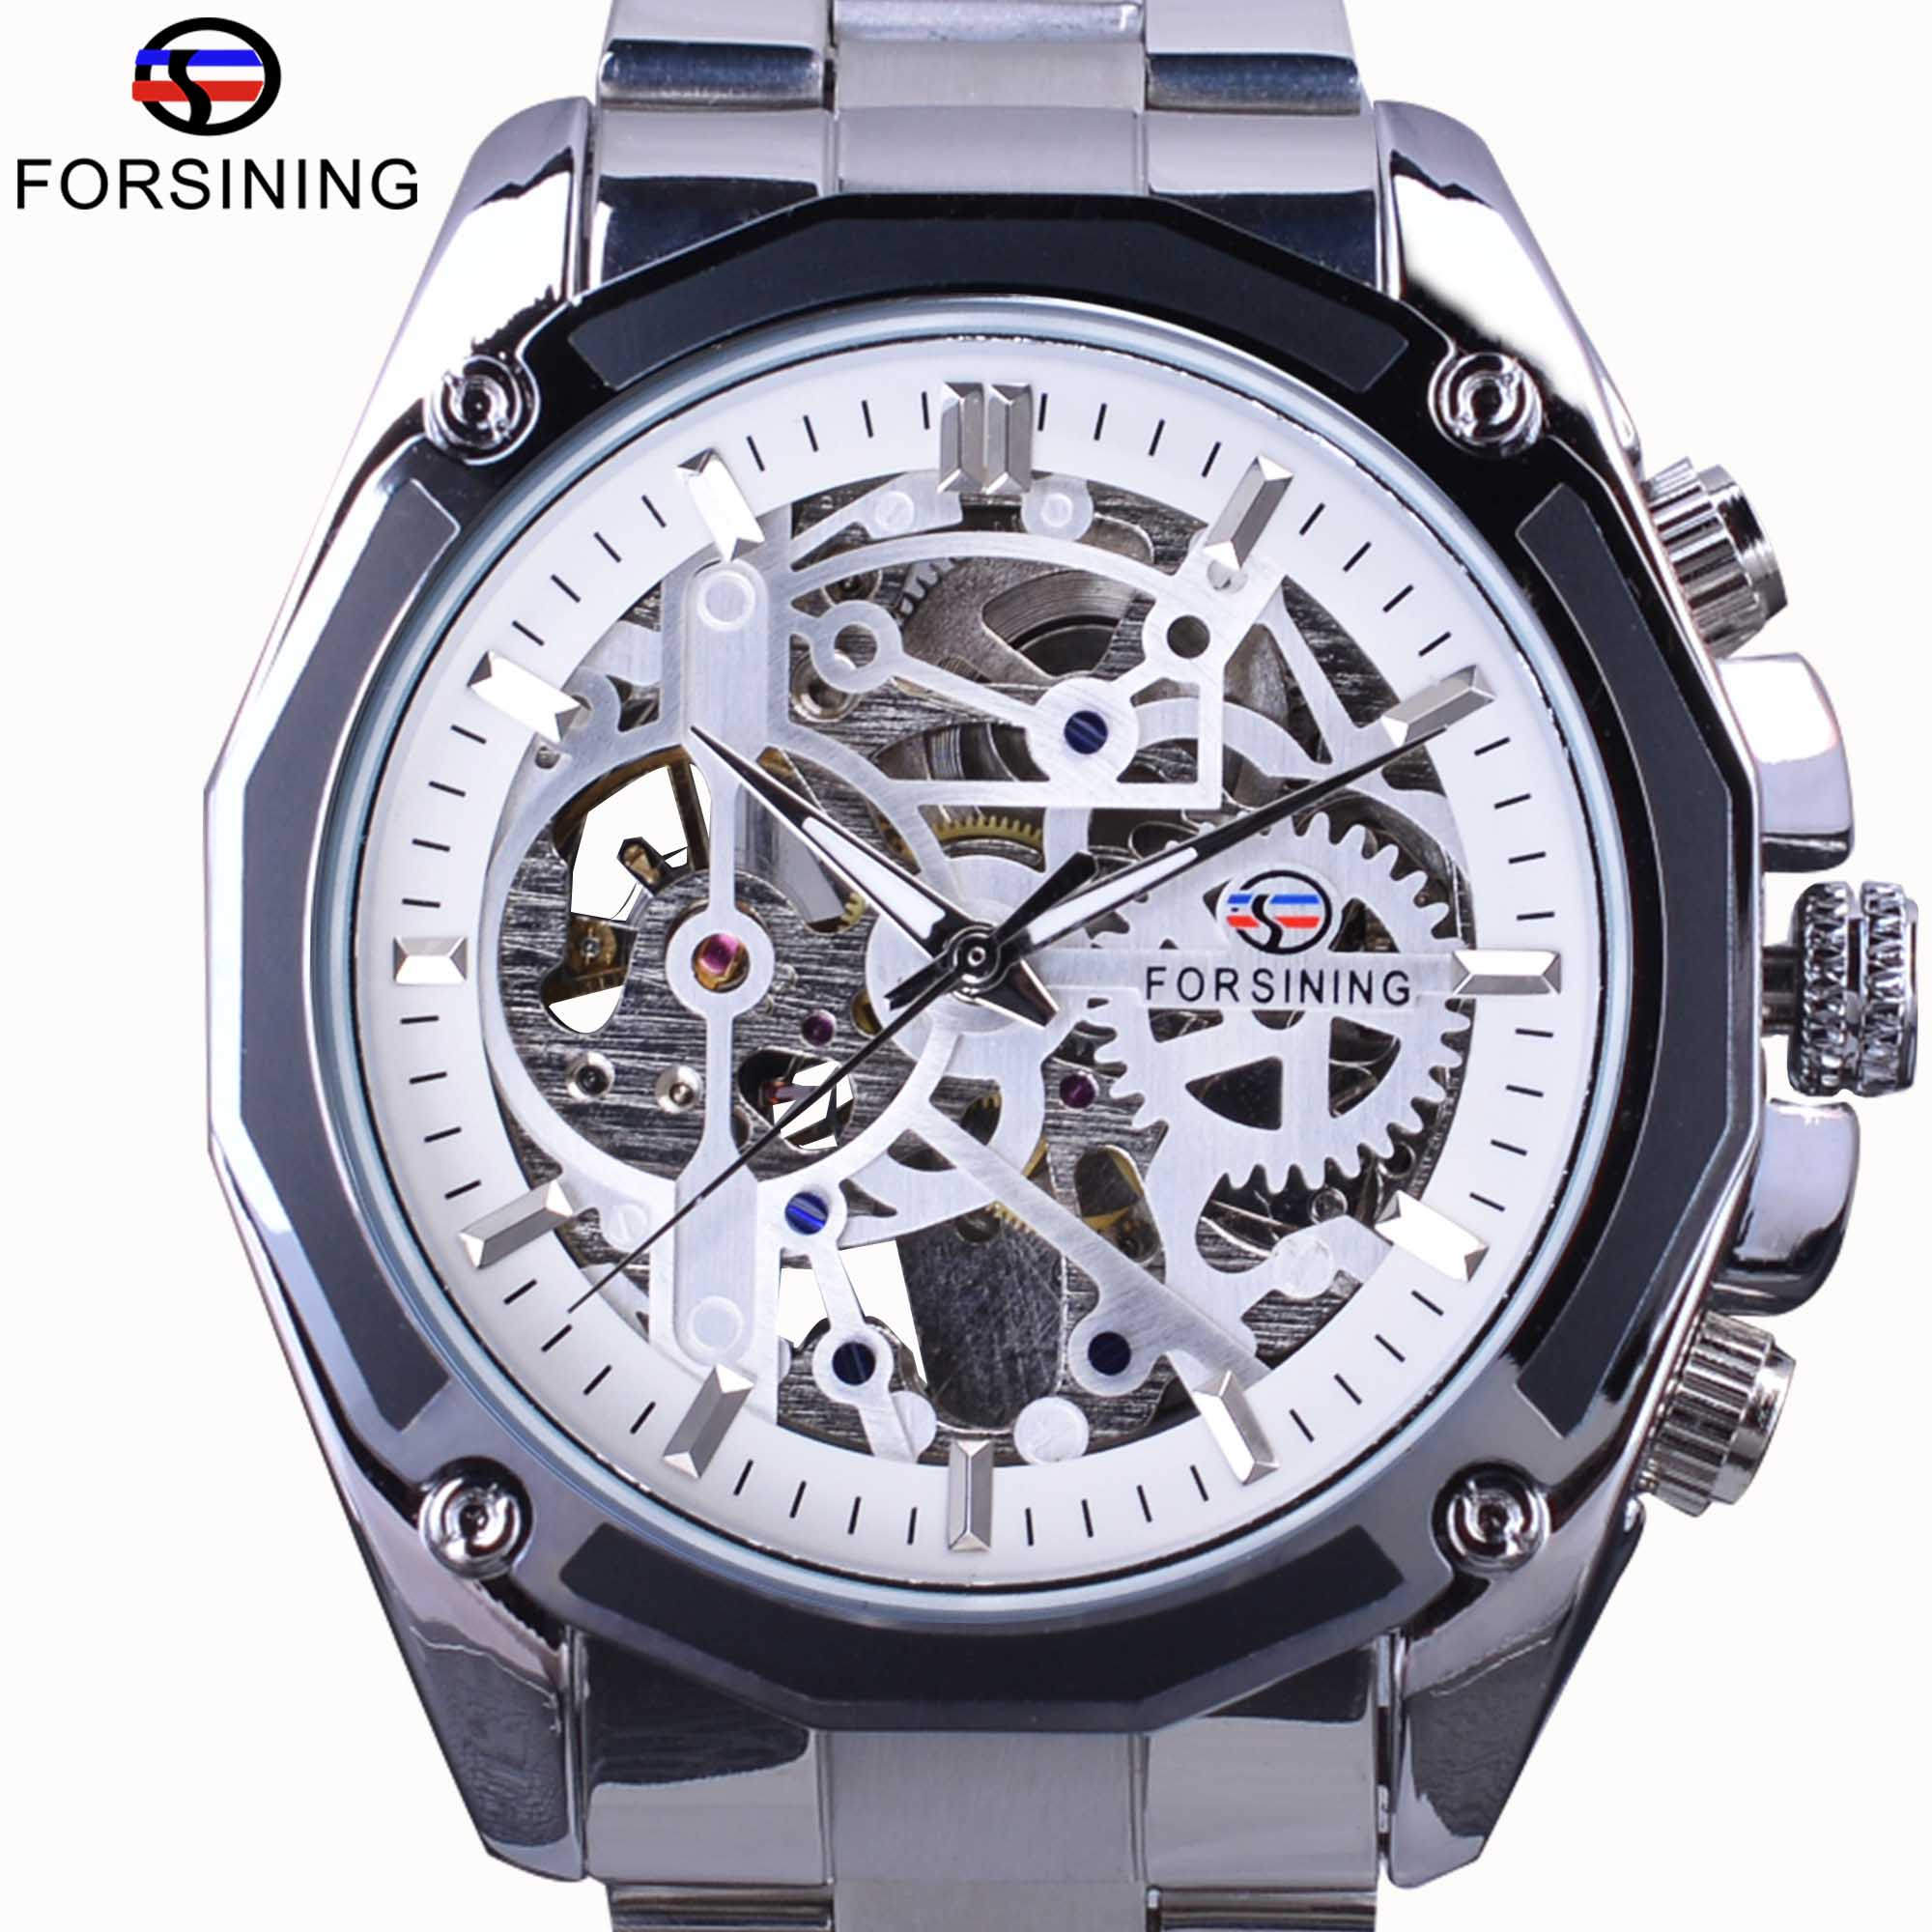 mens chronograph watches brand detail top mini business focus g sport luxury watch product military mf leather